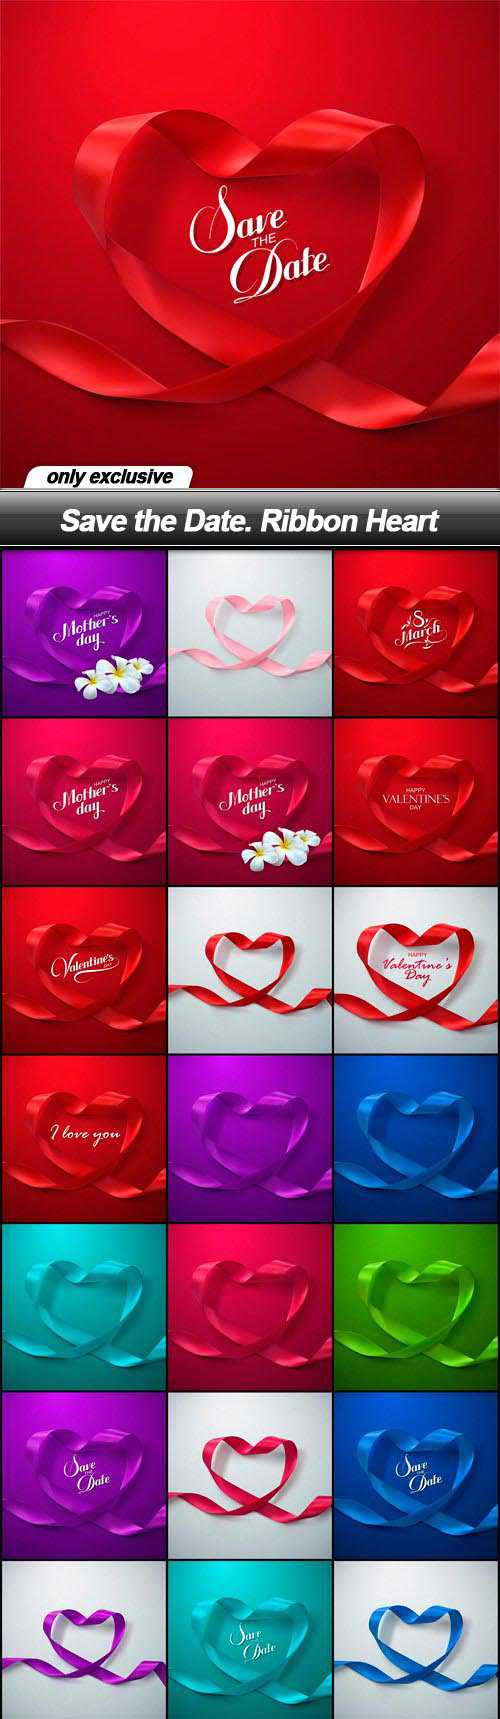 Save the Date. Ribbon Heart - 25 EPS